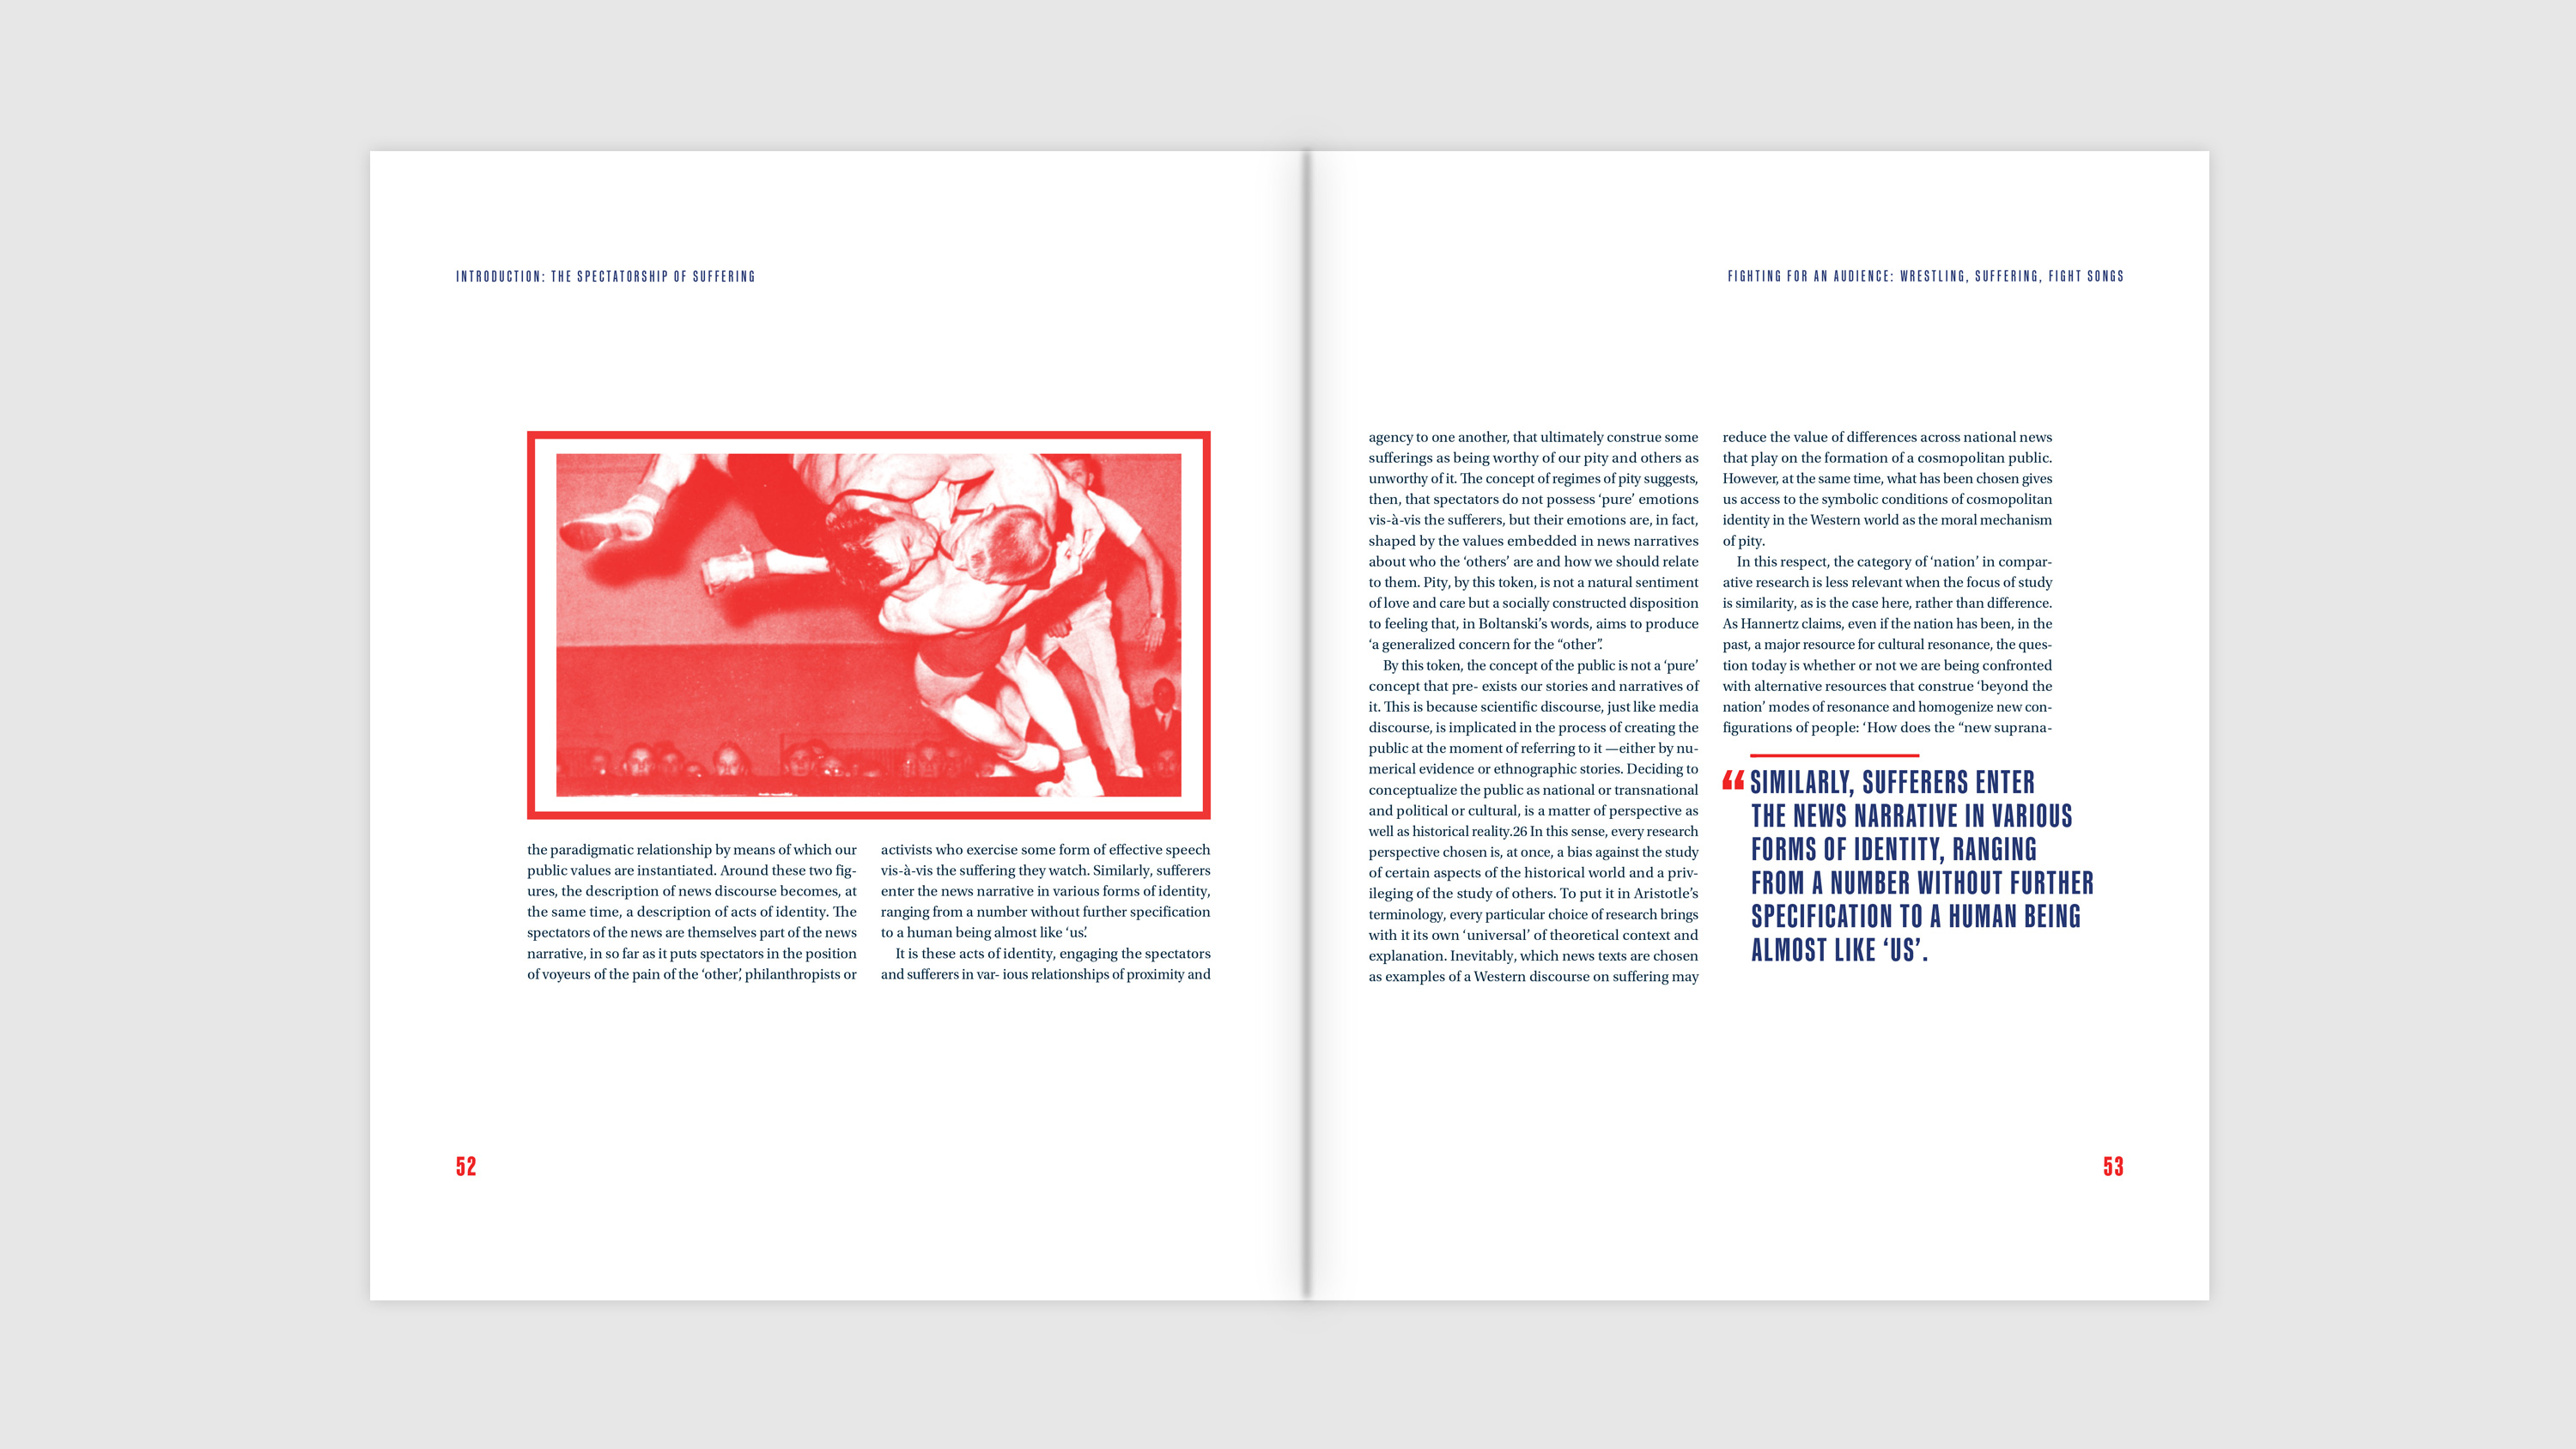 Spread holding imagery, body copy, and large quote